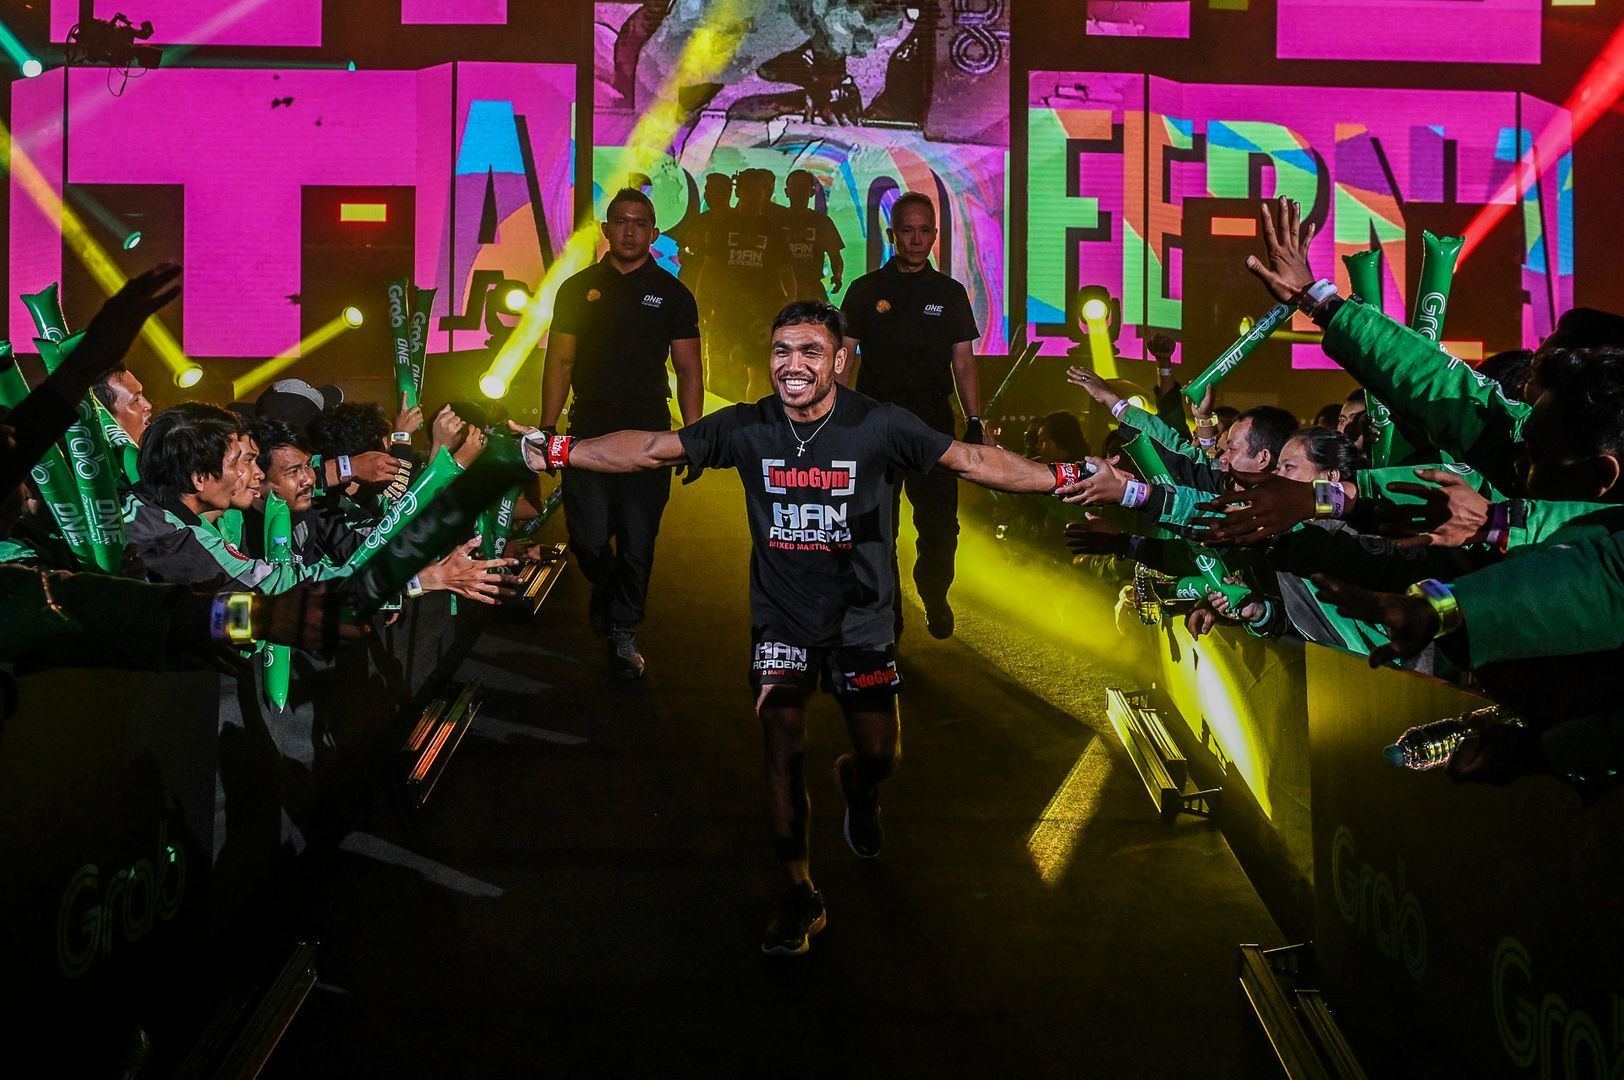 Indonesia's own Abro Fernandes makes his entrance in Jakarta